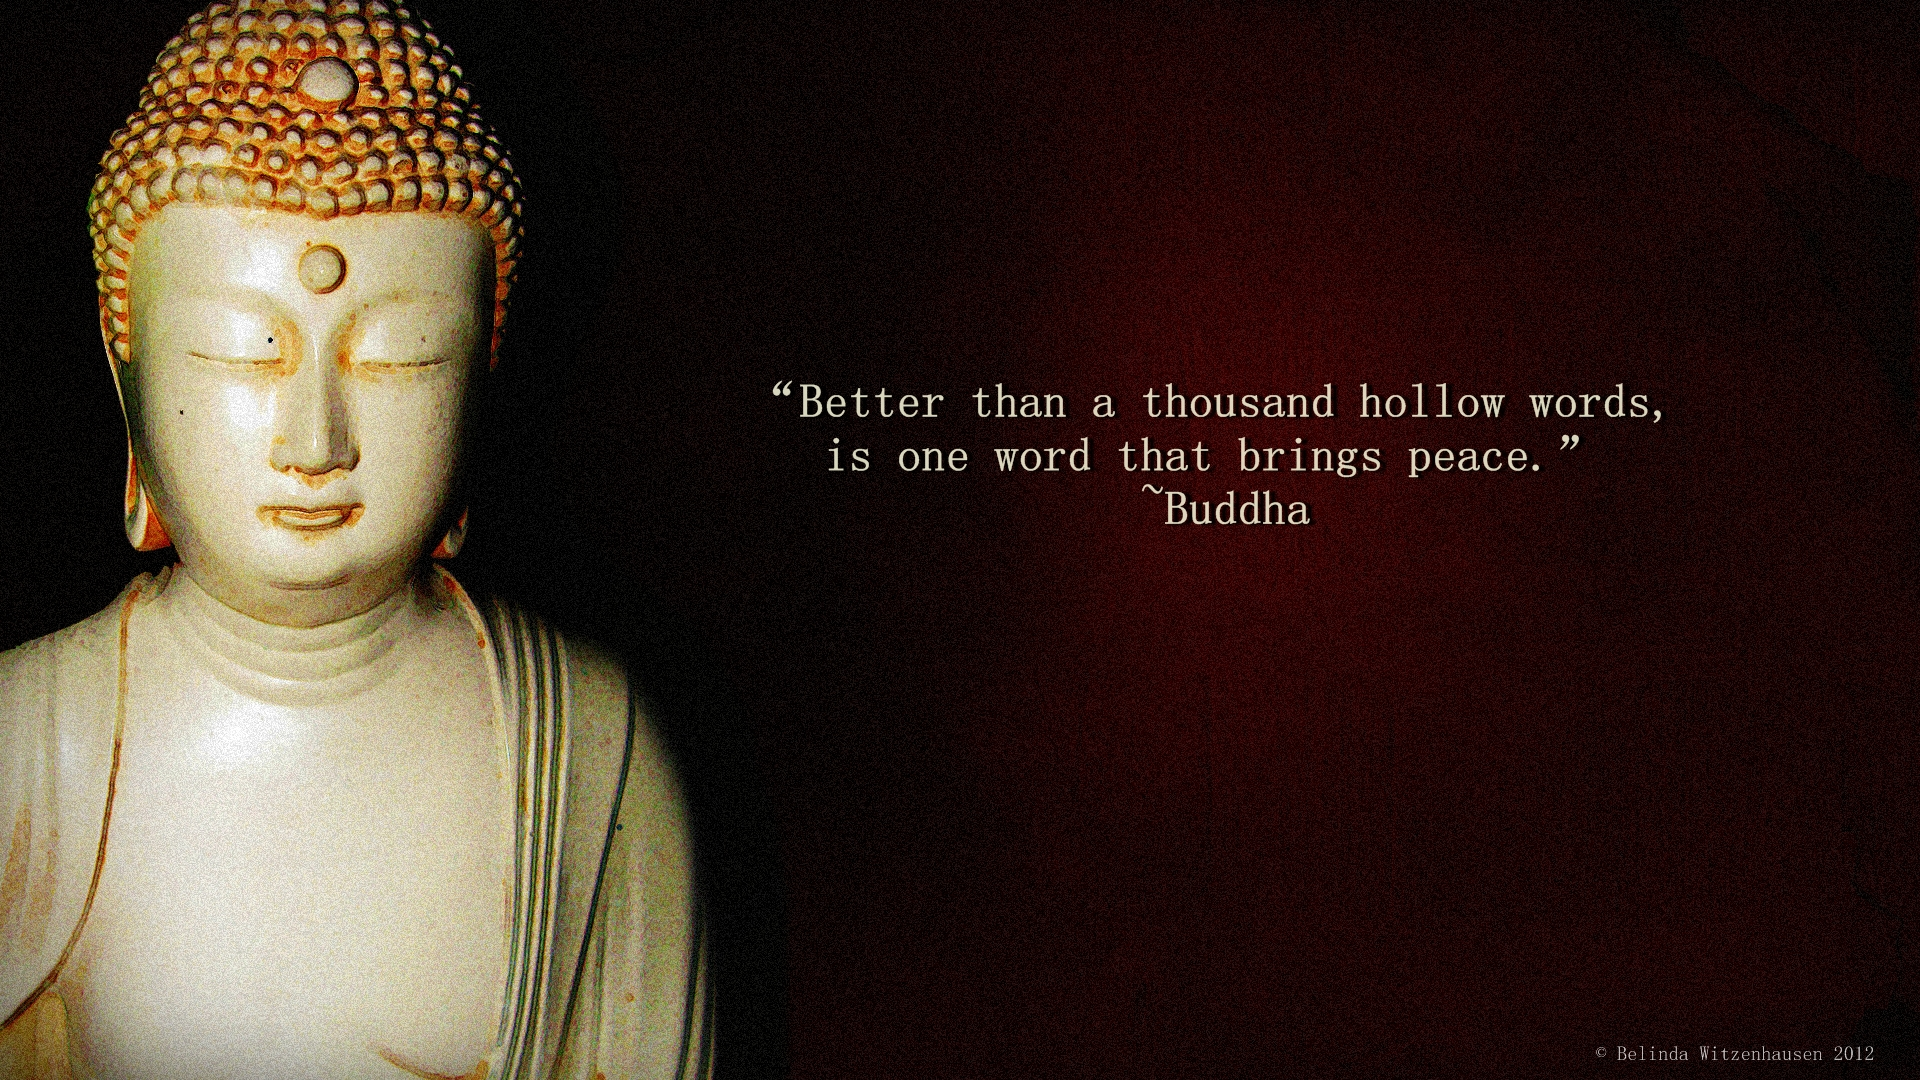 buddha quotes wallpaper 610727